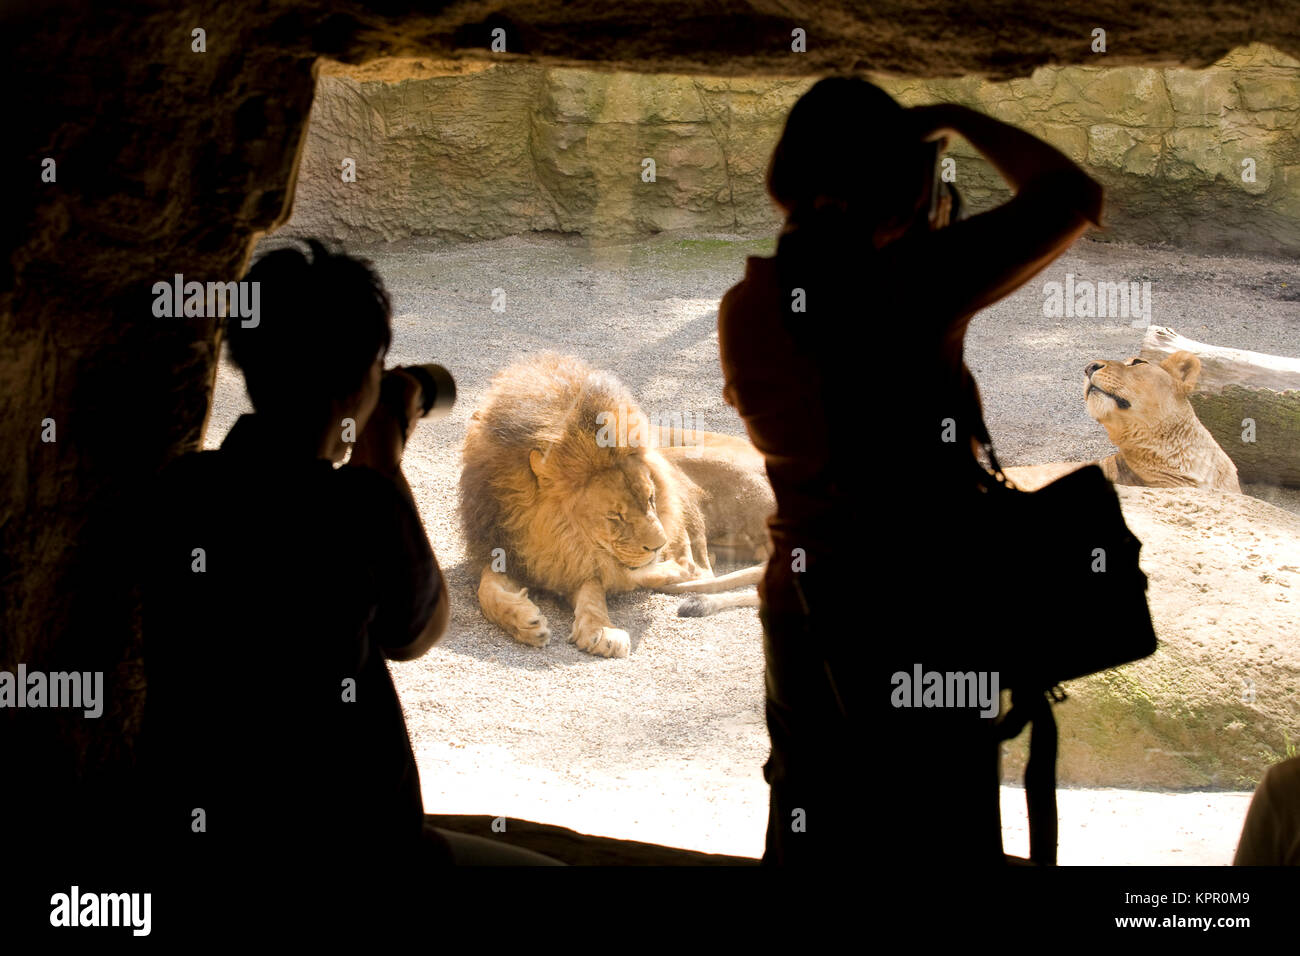 Europe, Germany, Wuppertal, the Zoo, visitors photograph lions.  Europa, Deutschland, Wuppertal, Zoo Wuppertal, - Stock Image